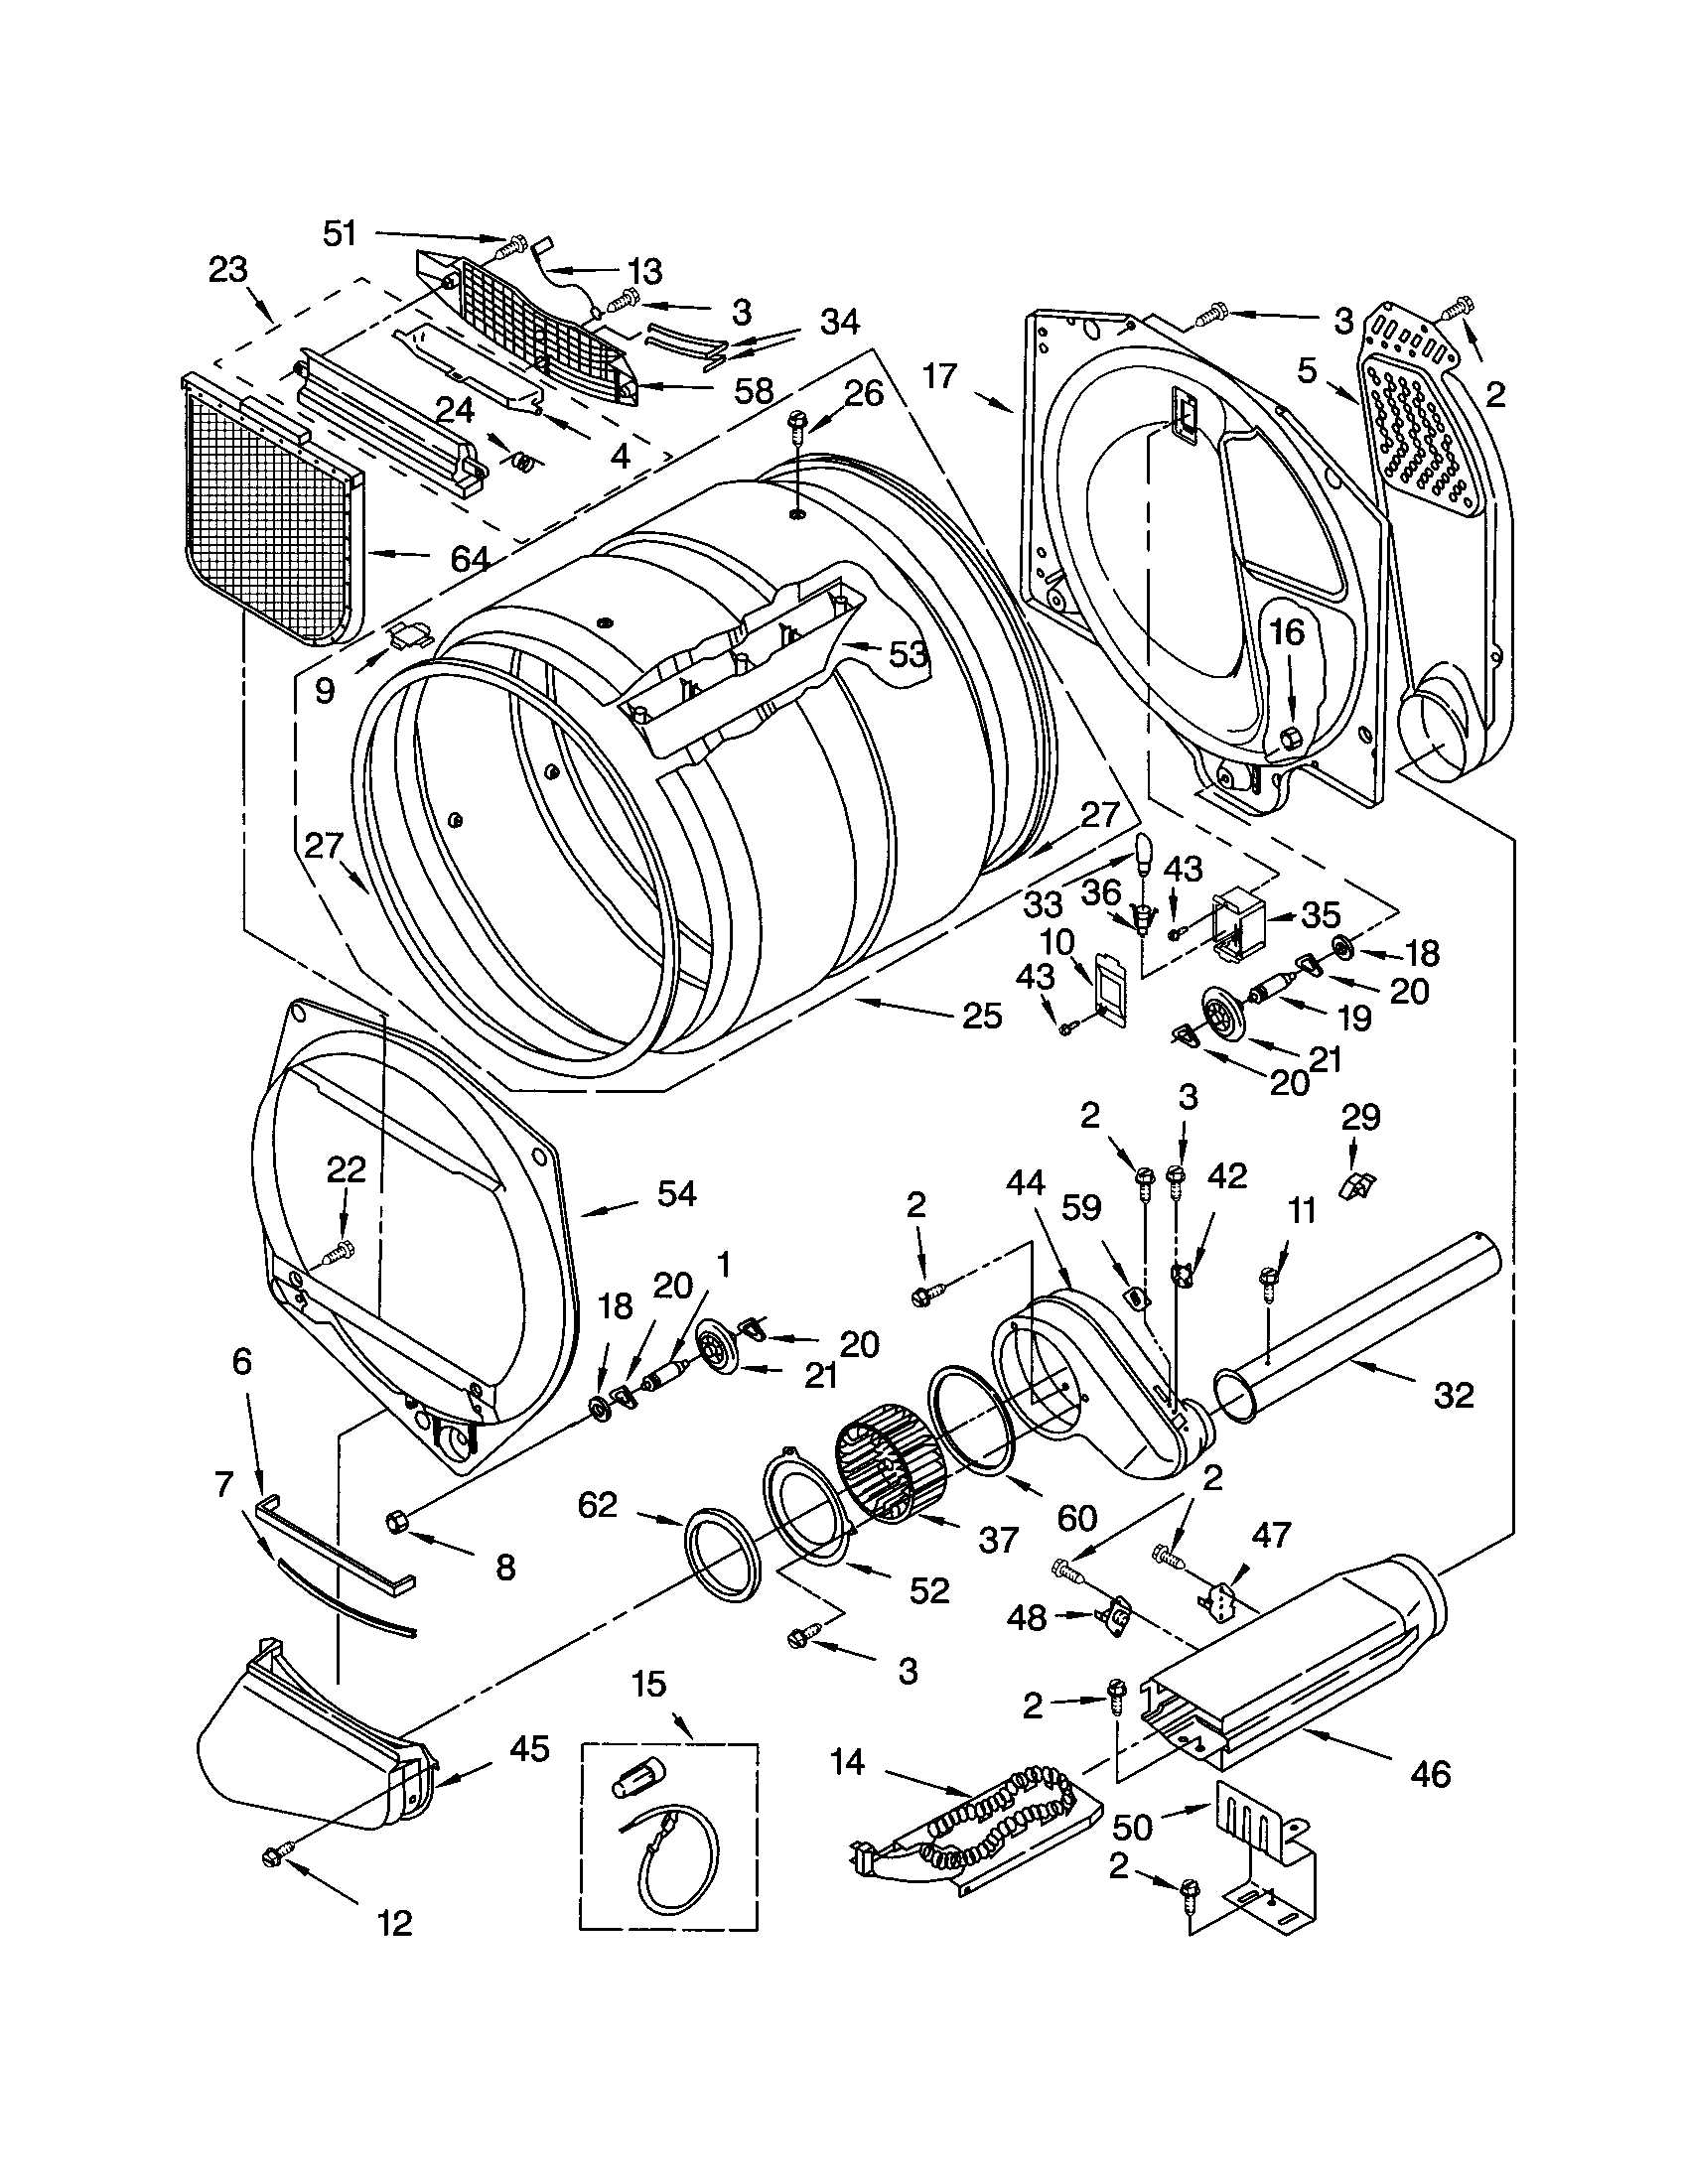 2mf86 Kenmore Model 110 96589210 Dryer Quit Heating also Showthread furthermore 911366 besides Direct Drive Washer Help moreover Wiring Diagram For Case 580c Backhoe. on 110 block wiring diagram